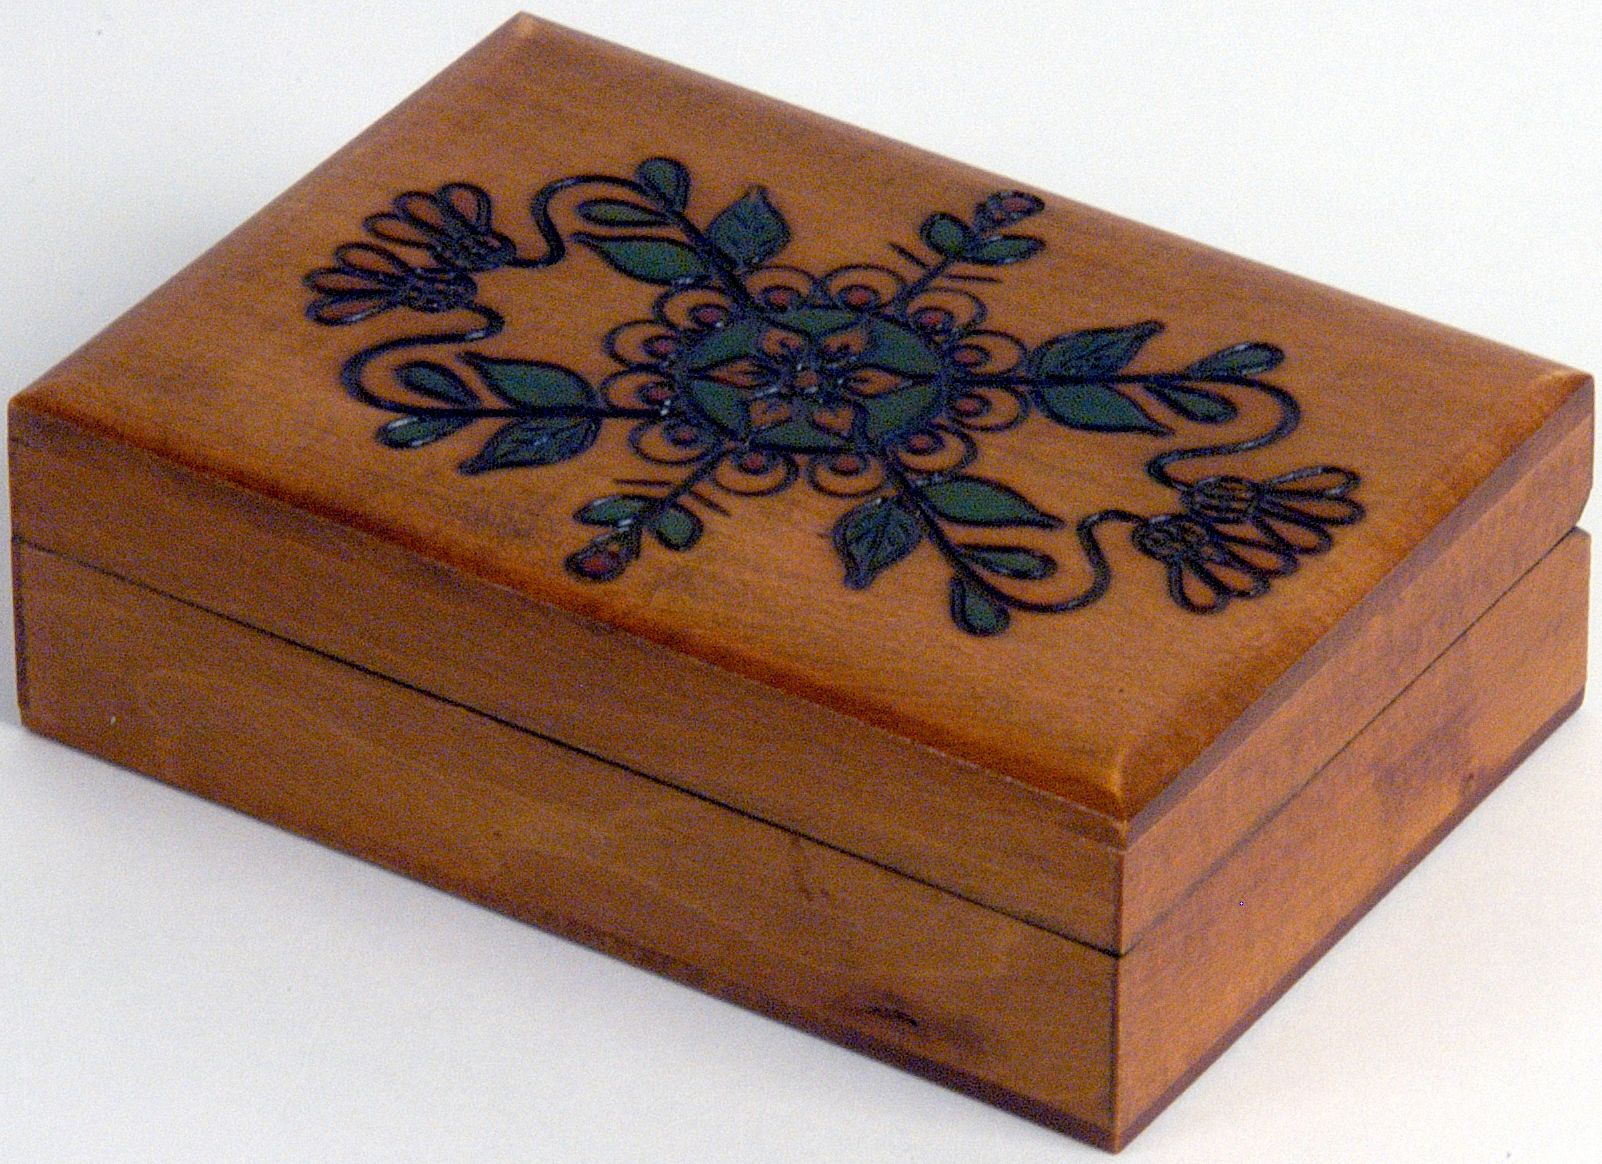 Decorated Wooden Boxes Decorative Wooden Boxes  Decorative Lacquered Wood Box Floral